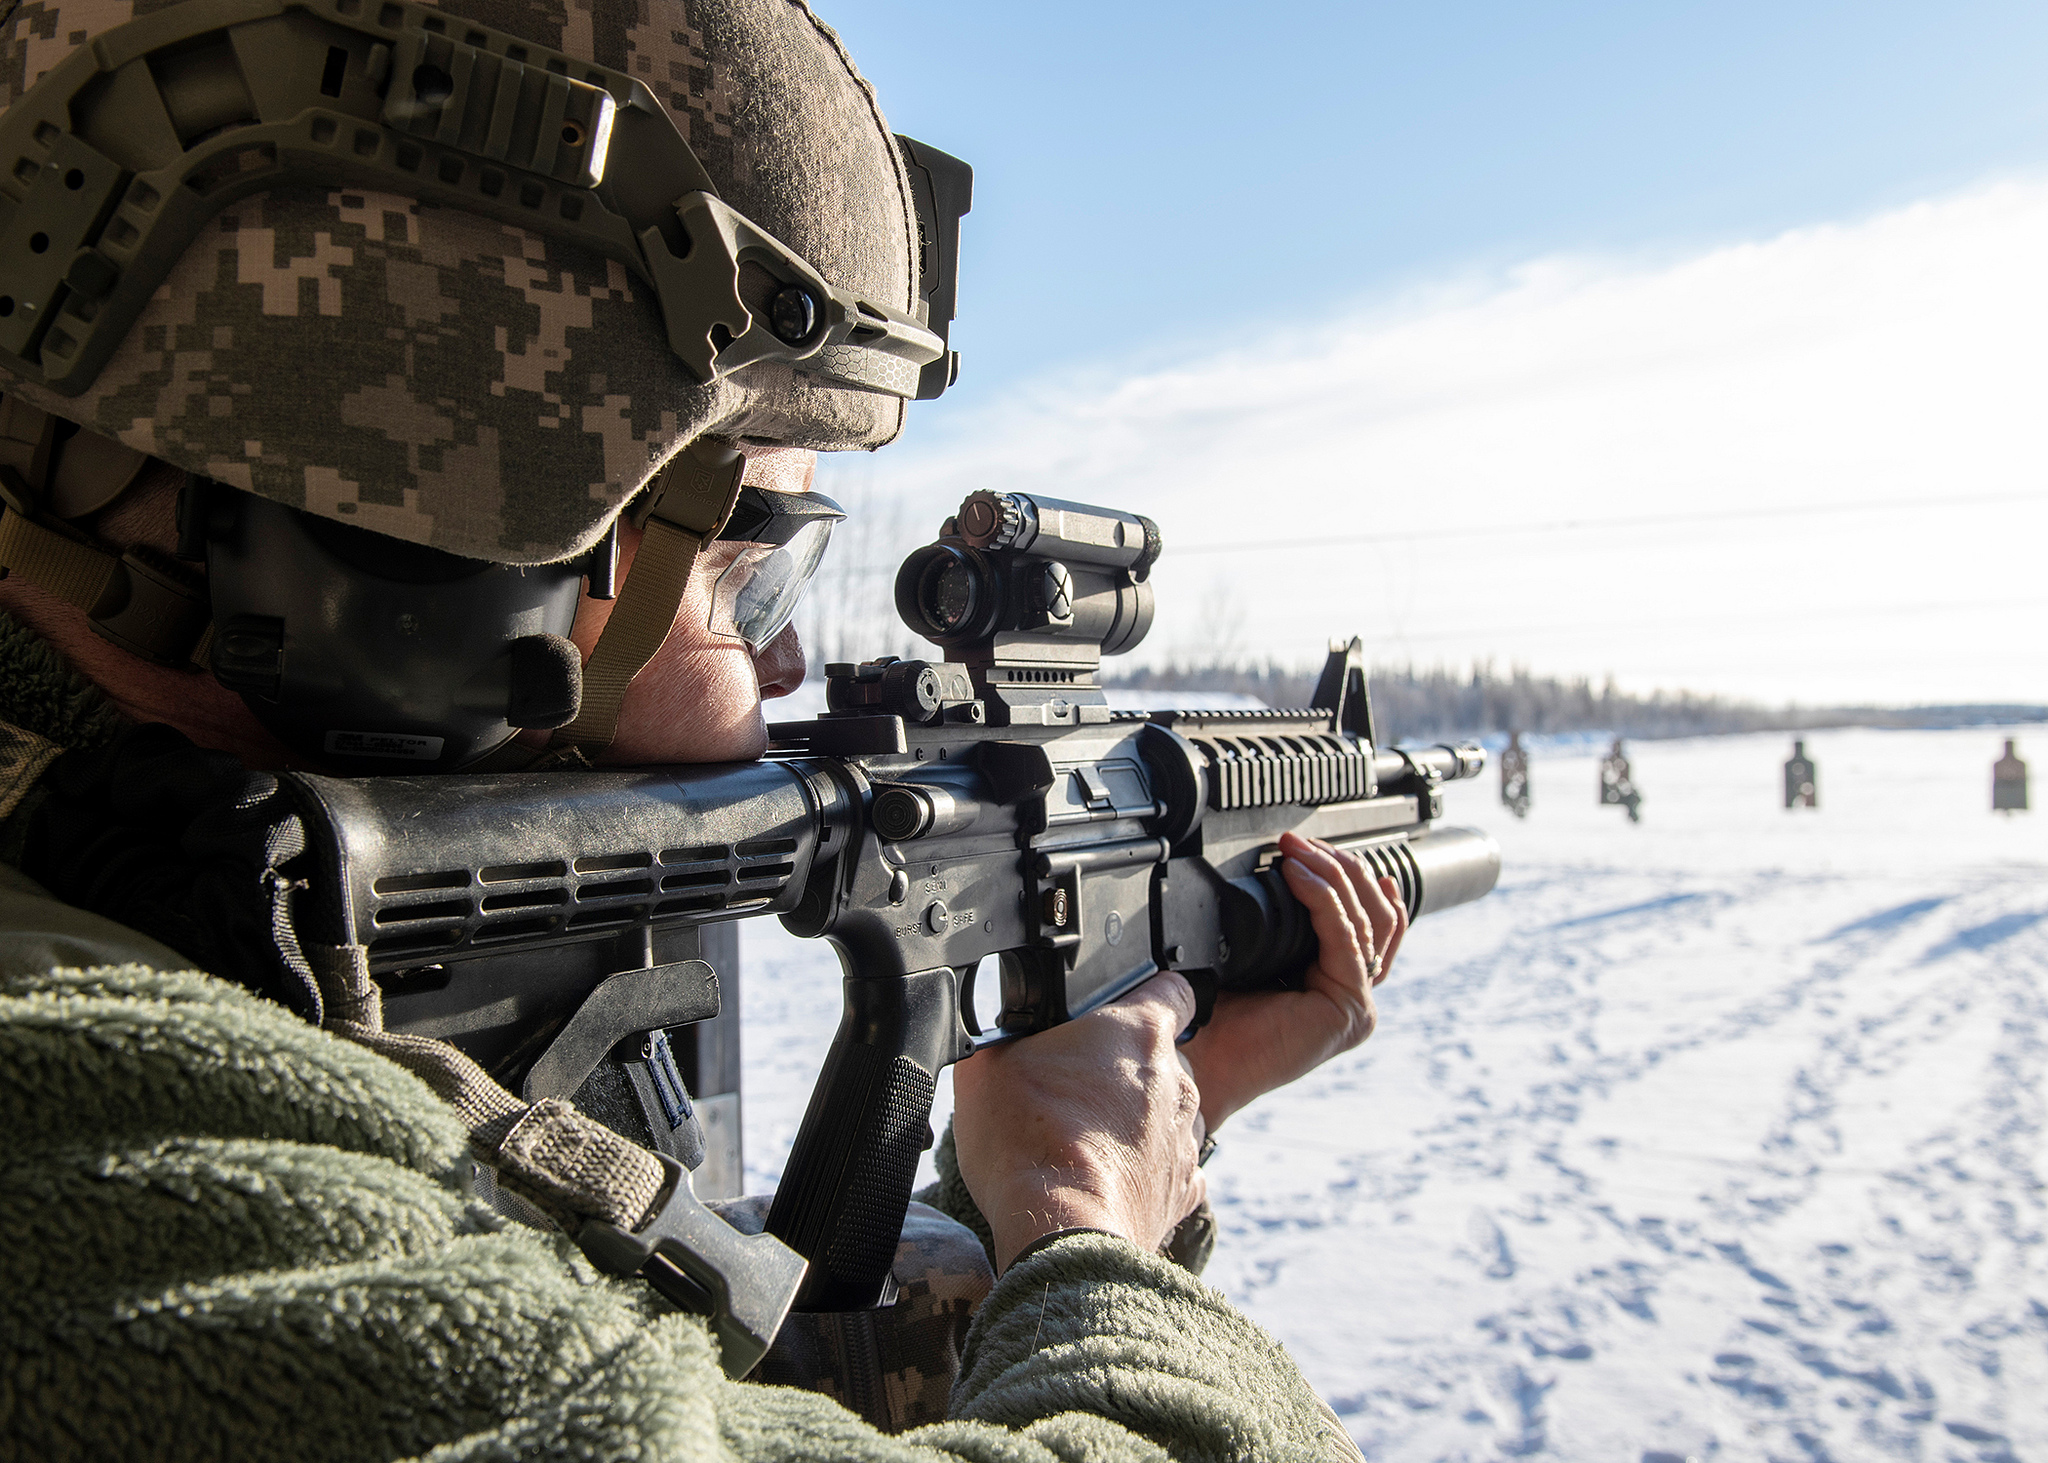 Capt. Andrew Riffe takes aim down range Feb. 9, 2019, at the weapons firing range on Eielson Air Force Base, Alaska. (Airman 1st Class Shannon Chace/Indo-Pacific Command)